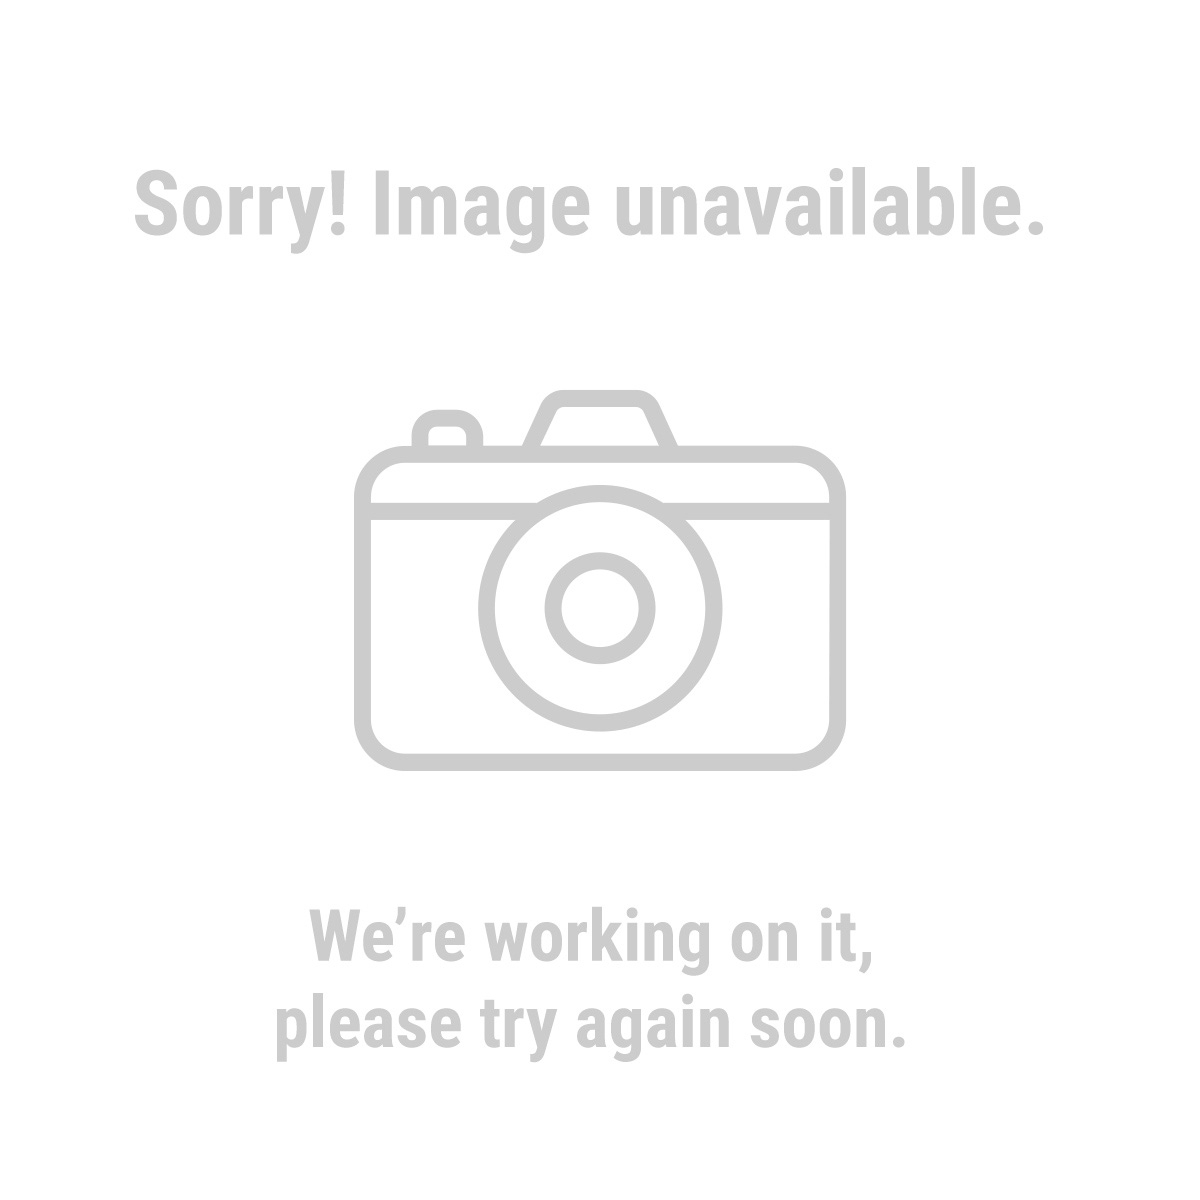 Greenwood® 63092 4 gal. Backpack Sprayer